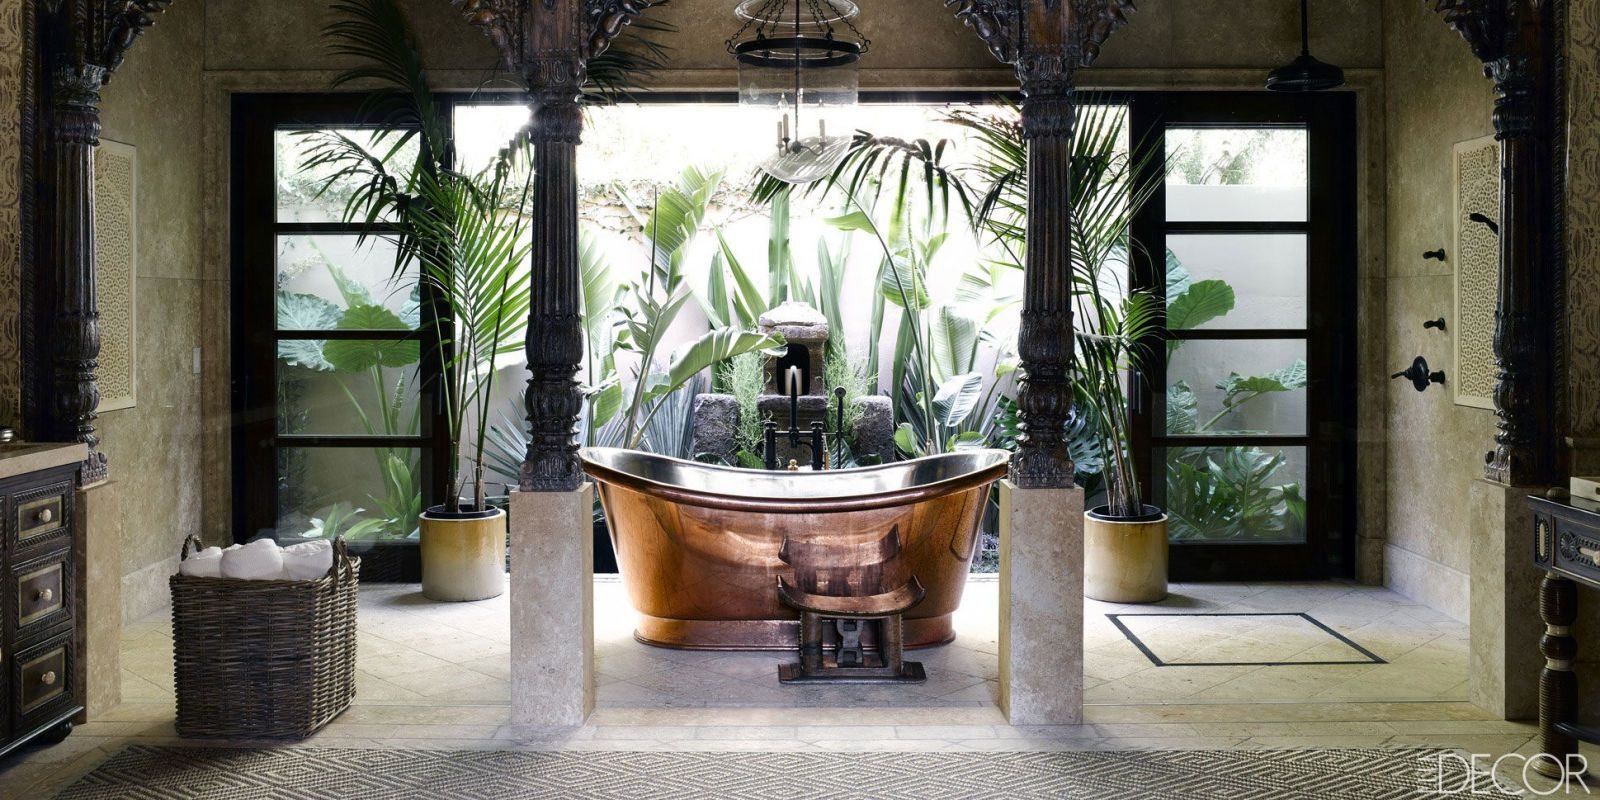 12 Of The Most Beautiful Rooms In Los Angeles